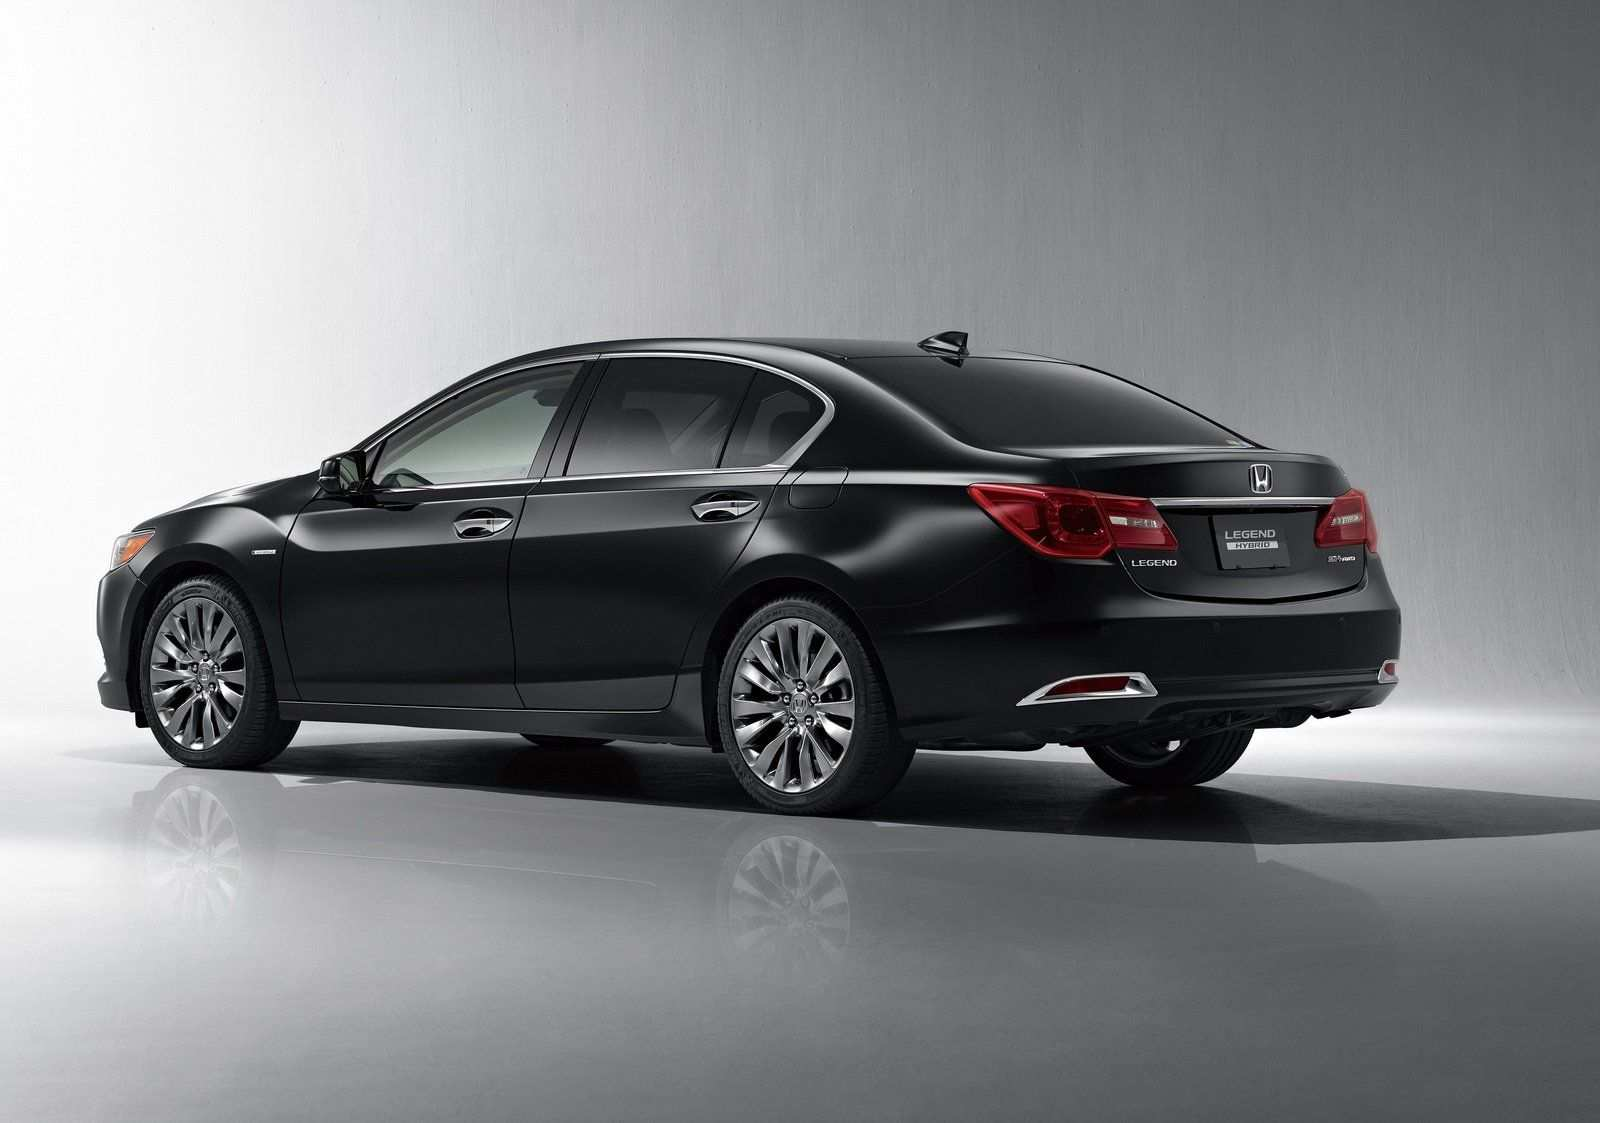 33 All New Honda Legend 2020 Release Date